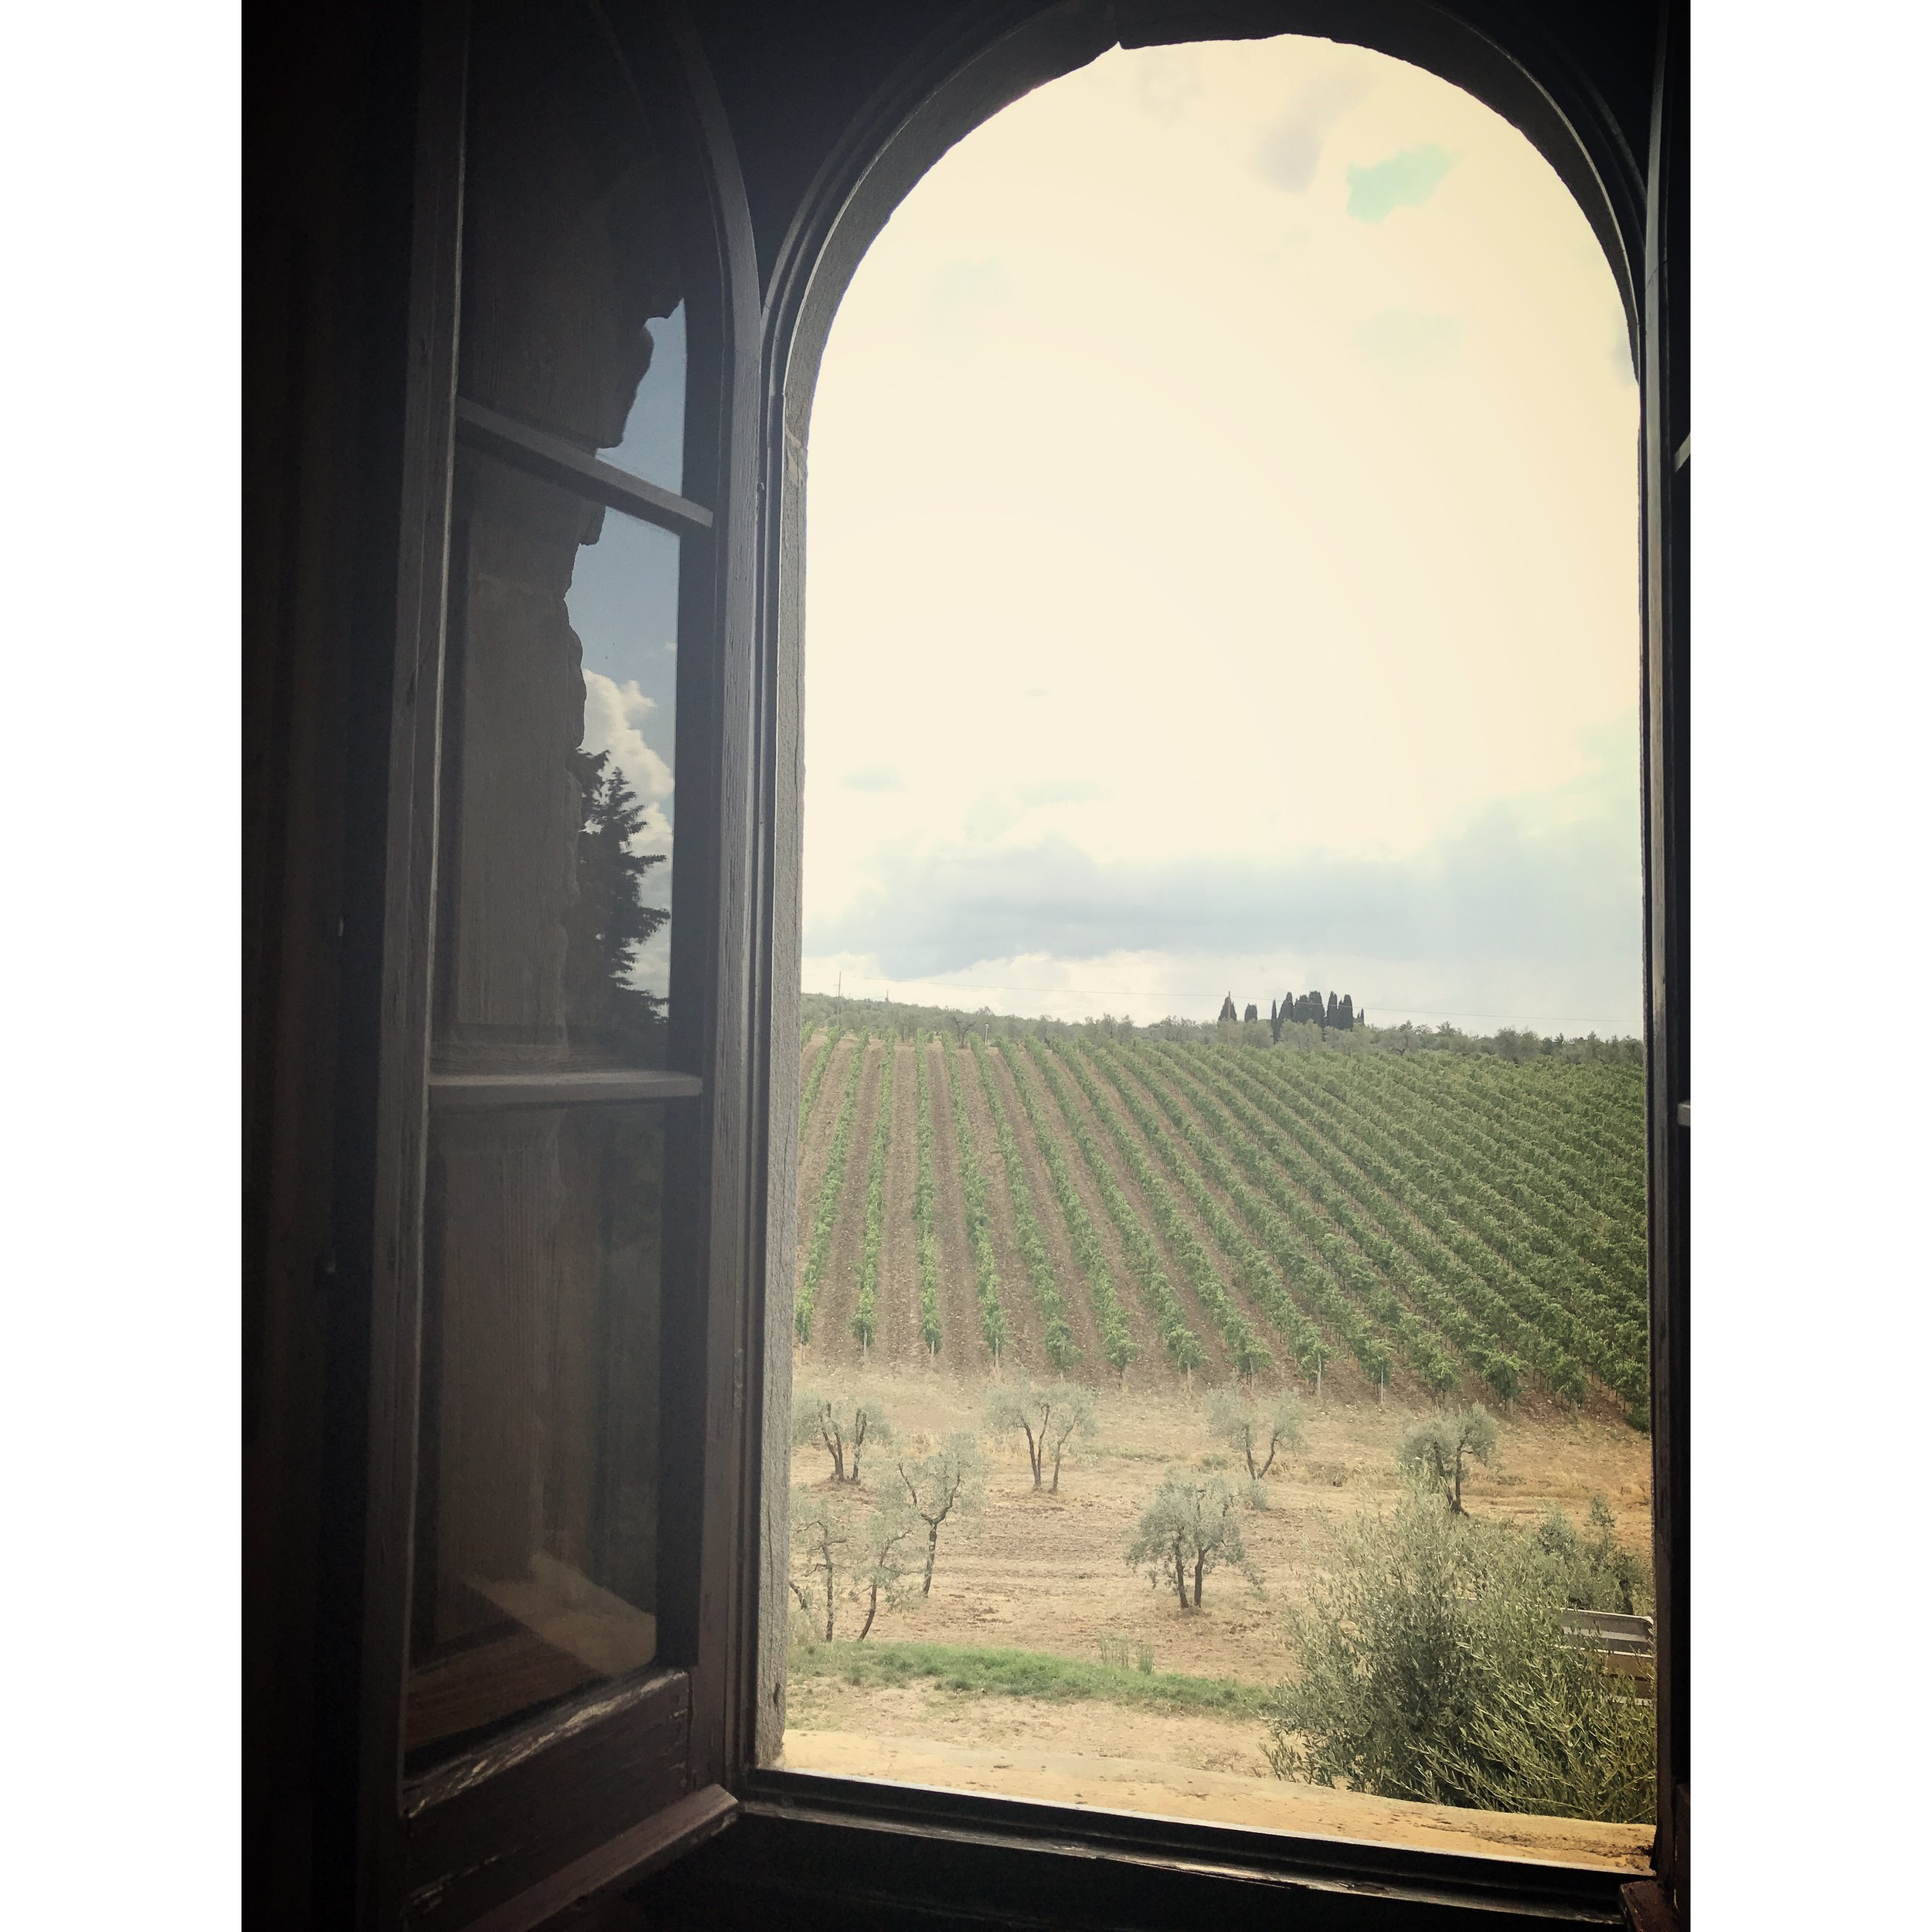 this was the view from our window at the first vineyard we visited on our wine tour. the knowledge and the tastebuds were on a different level there! we visited through chianti. the little trees in front our olive trees.